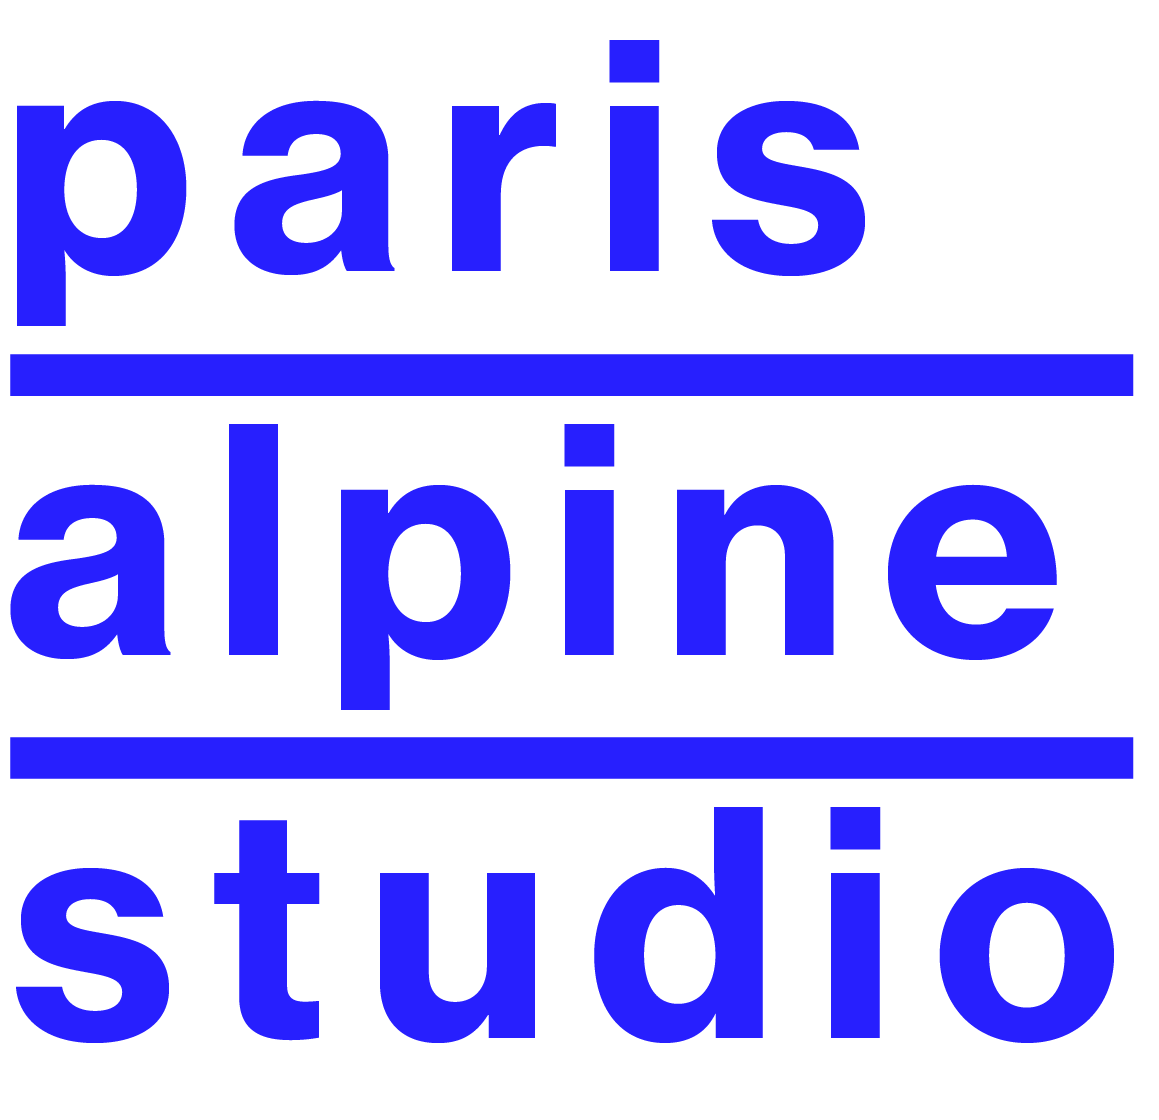 Paris Phoenix Studio